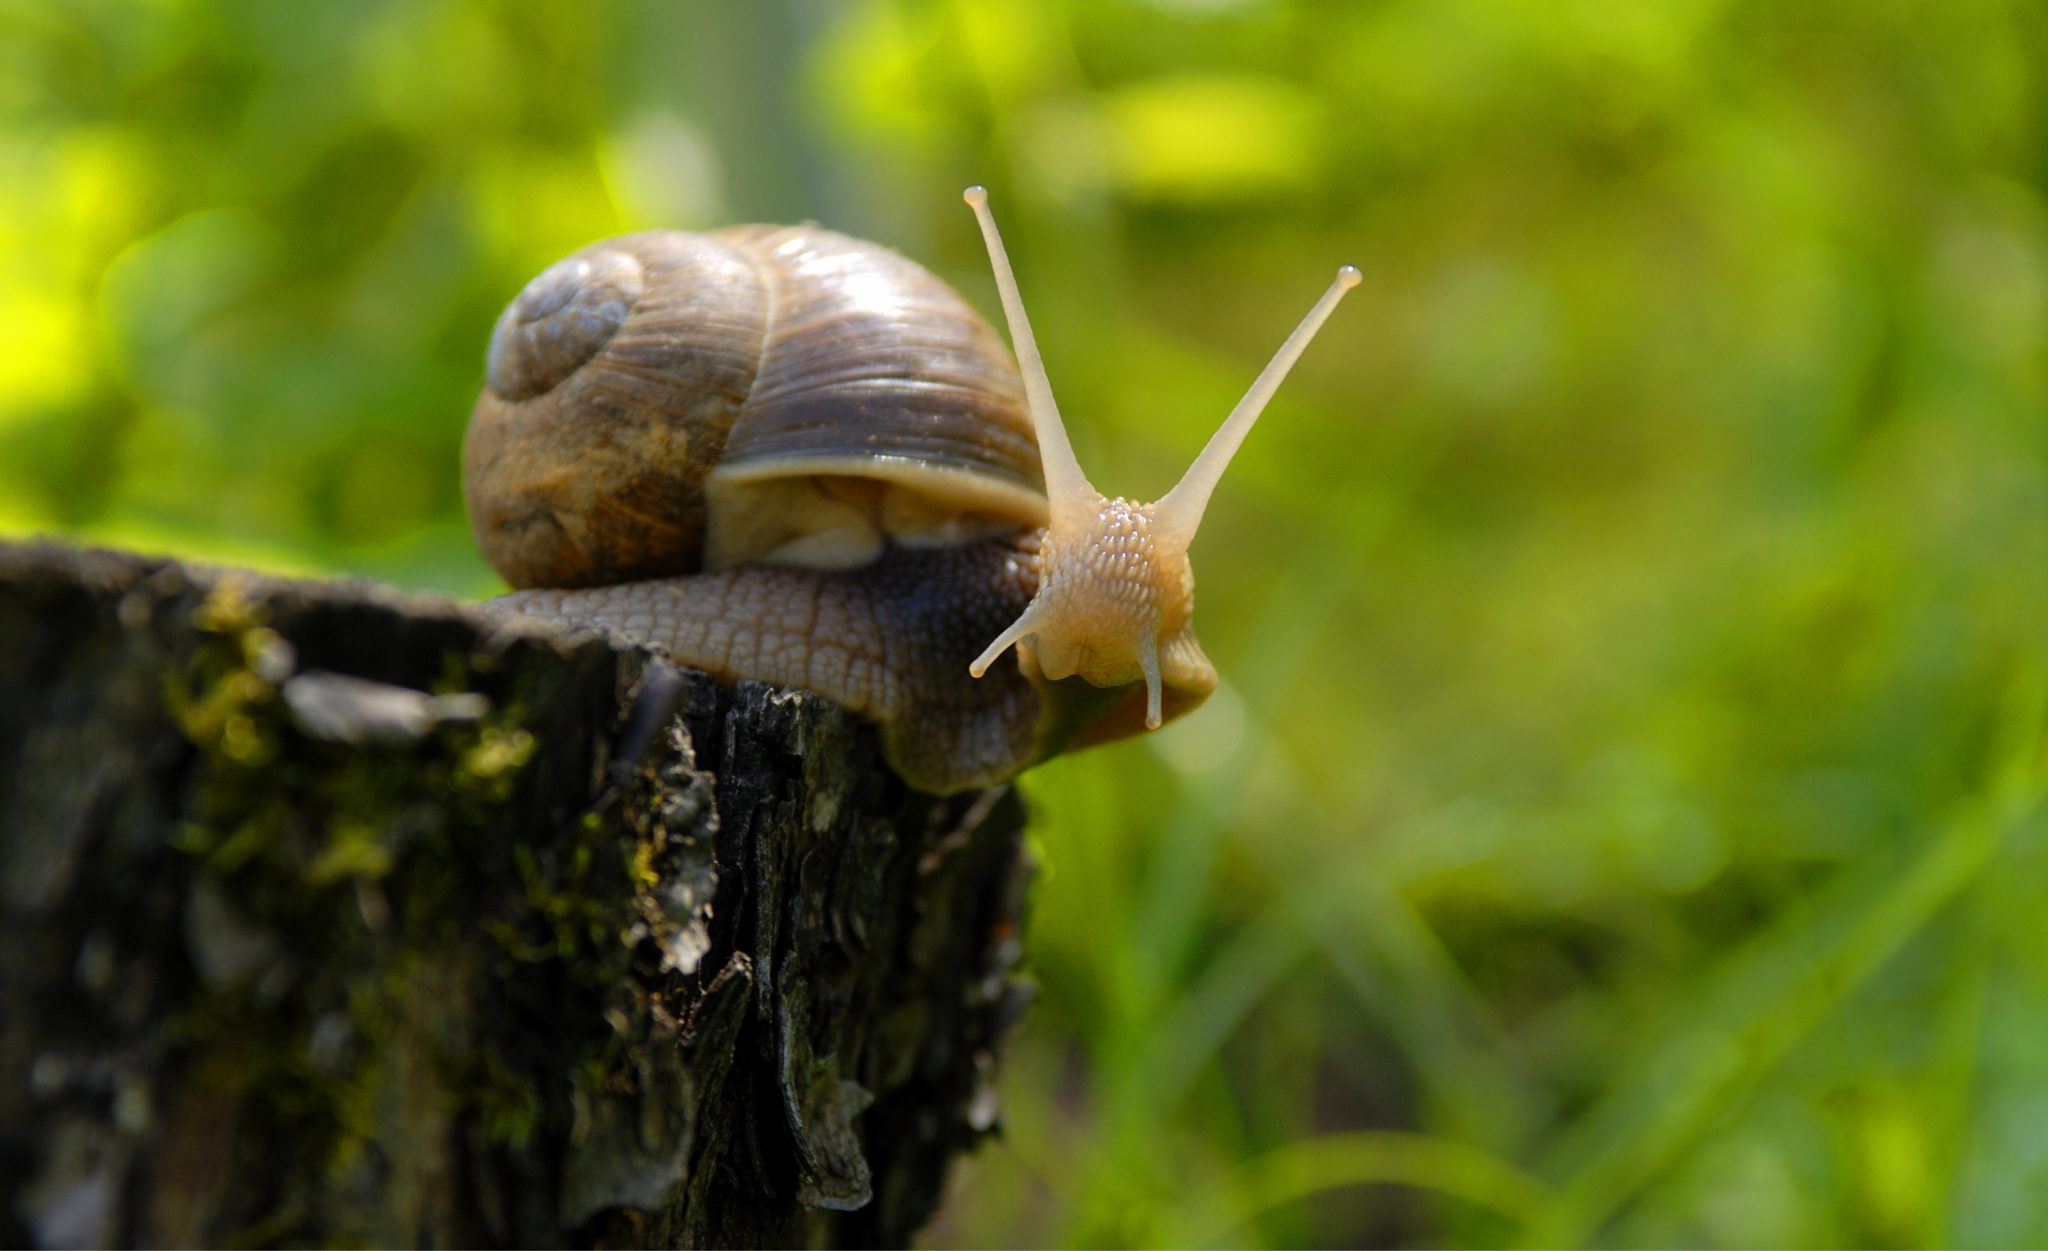 How to Keep Snails + Slugs Out of Your Garden